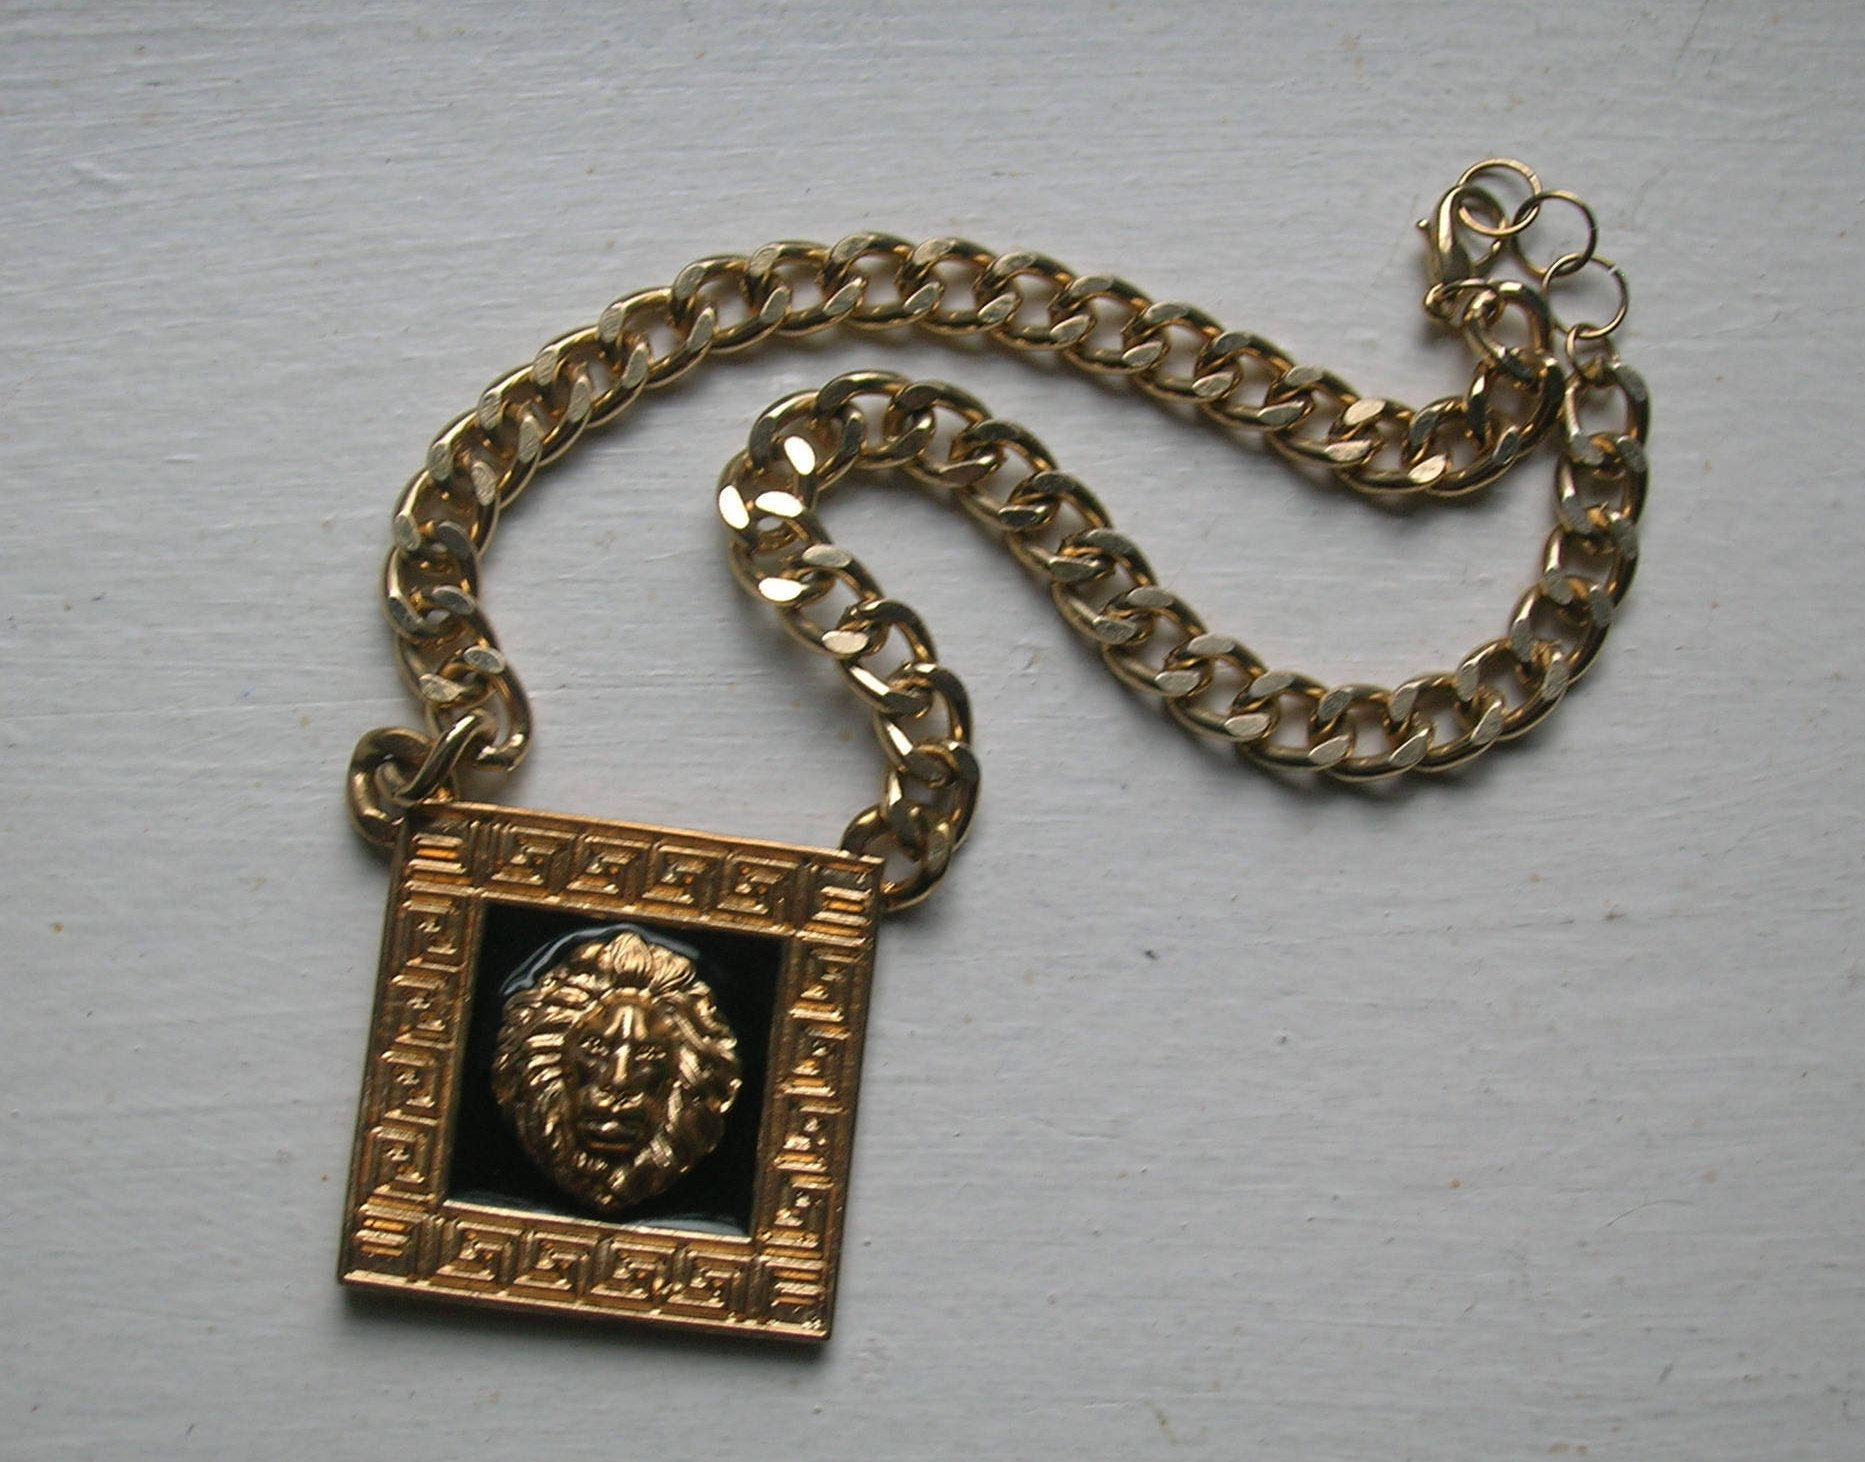 page sun jewelry wilderness power shompole beneath stands in be african a gold solid alone can ruby collection pendant this or strength and product lion the featuring symbolizing